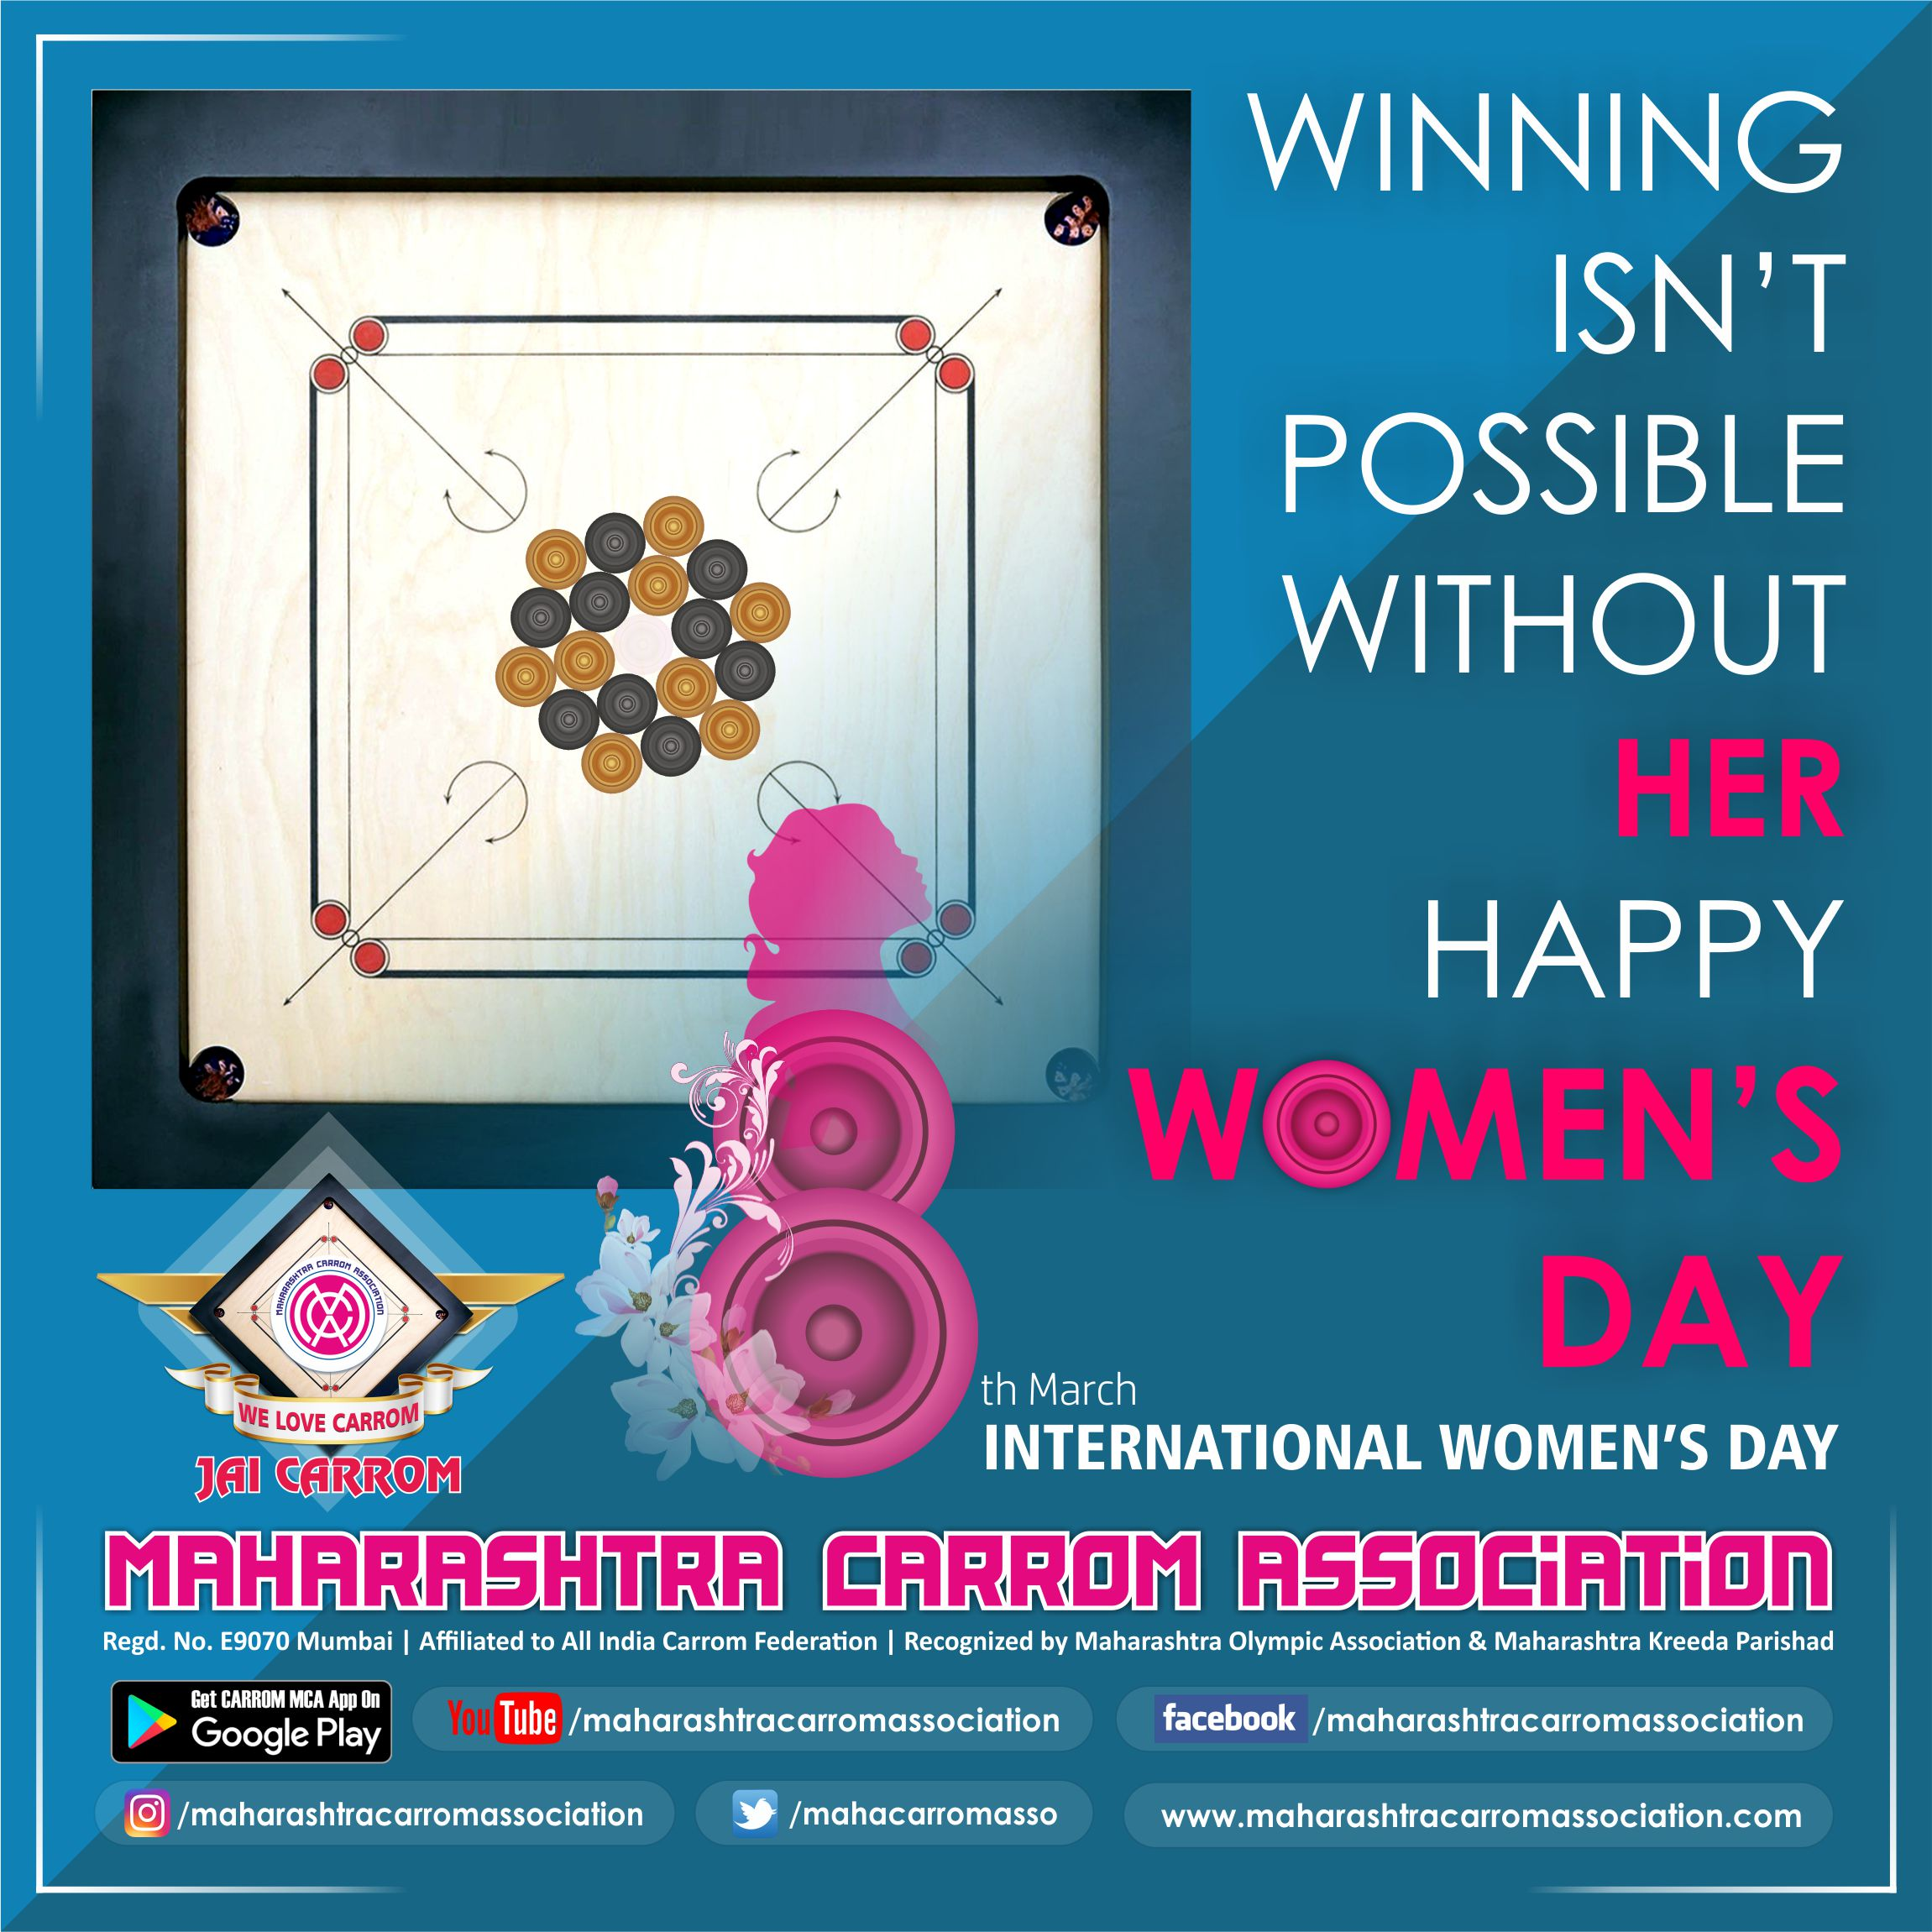 8th March INTERNATIONAL WOMEN'S DAY